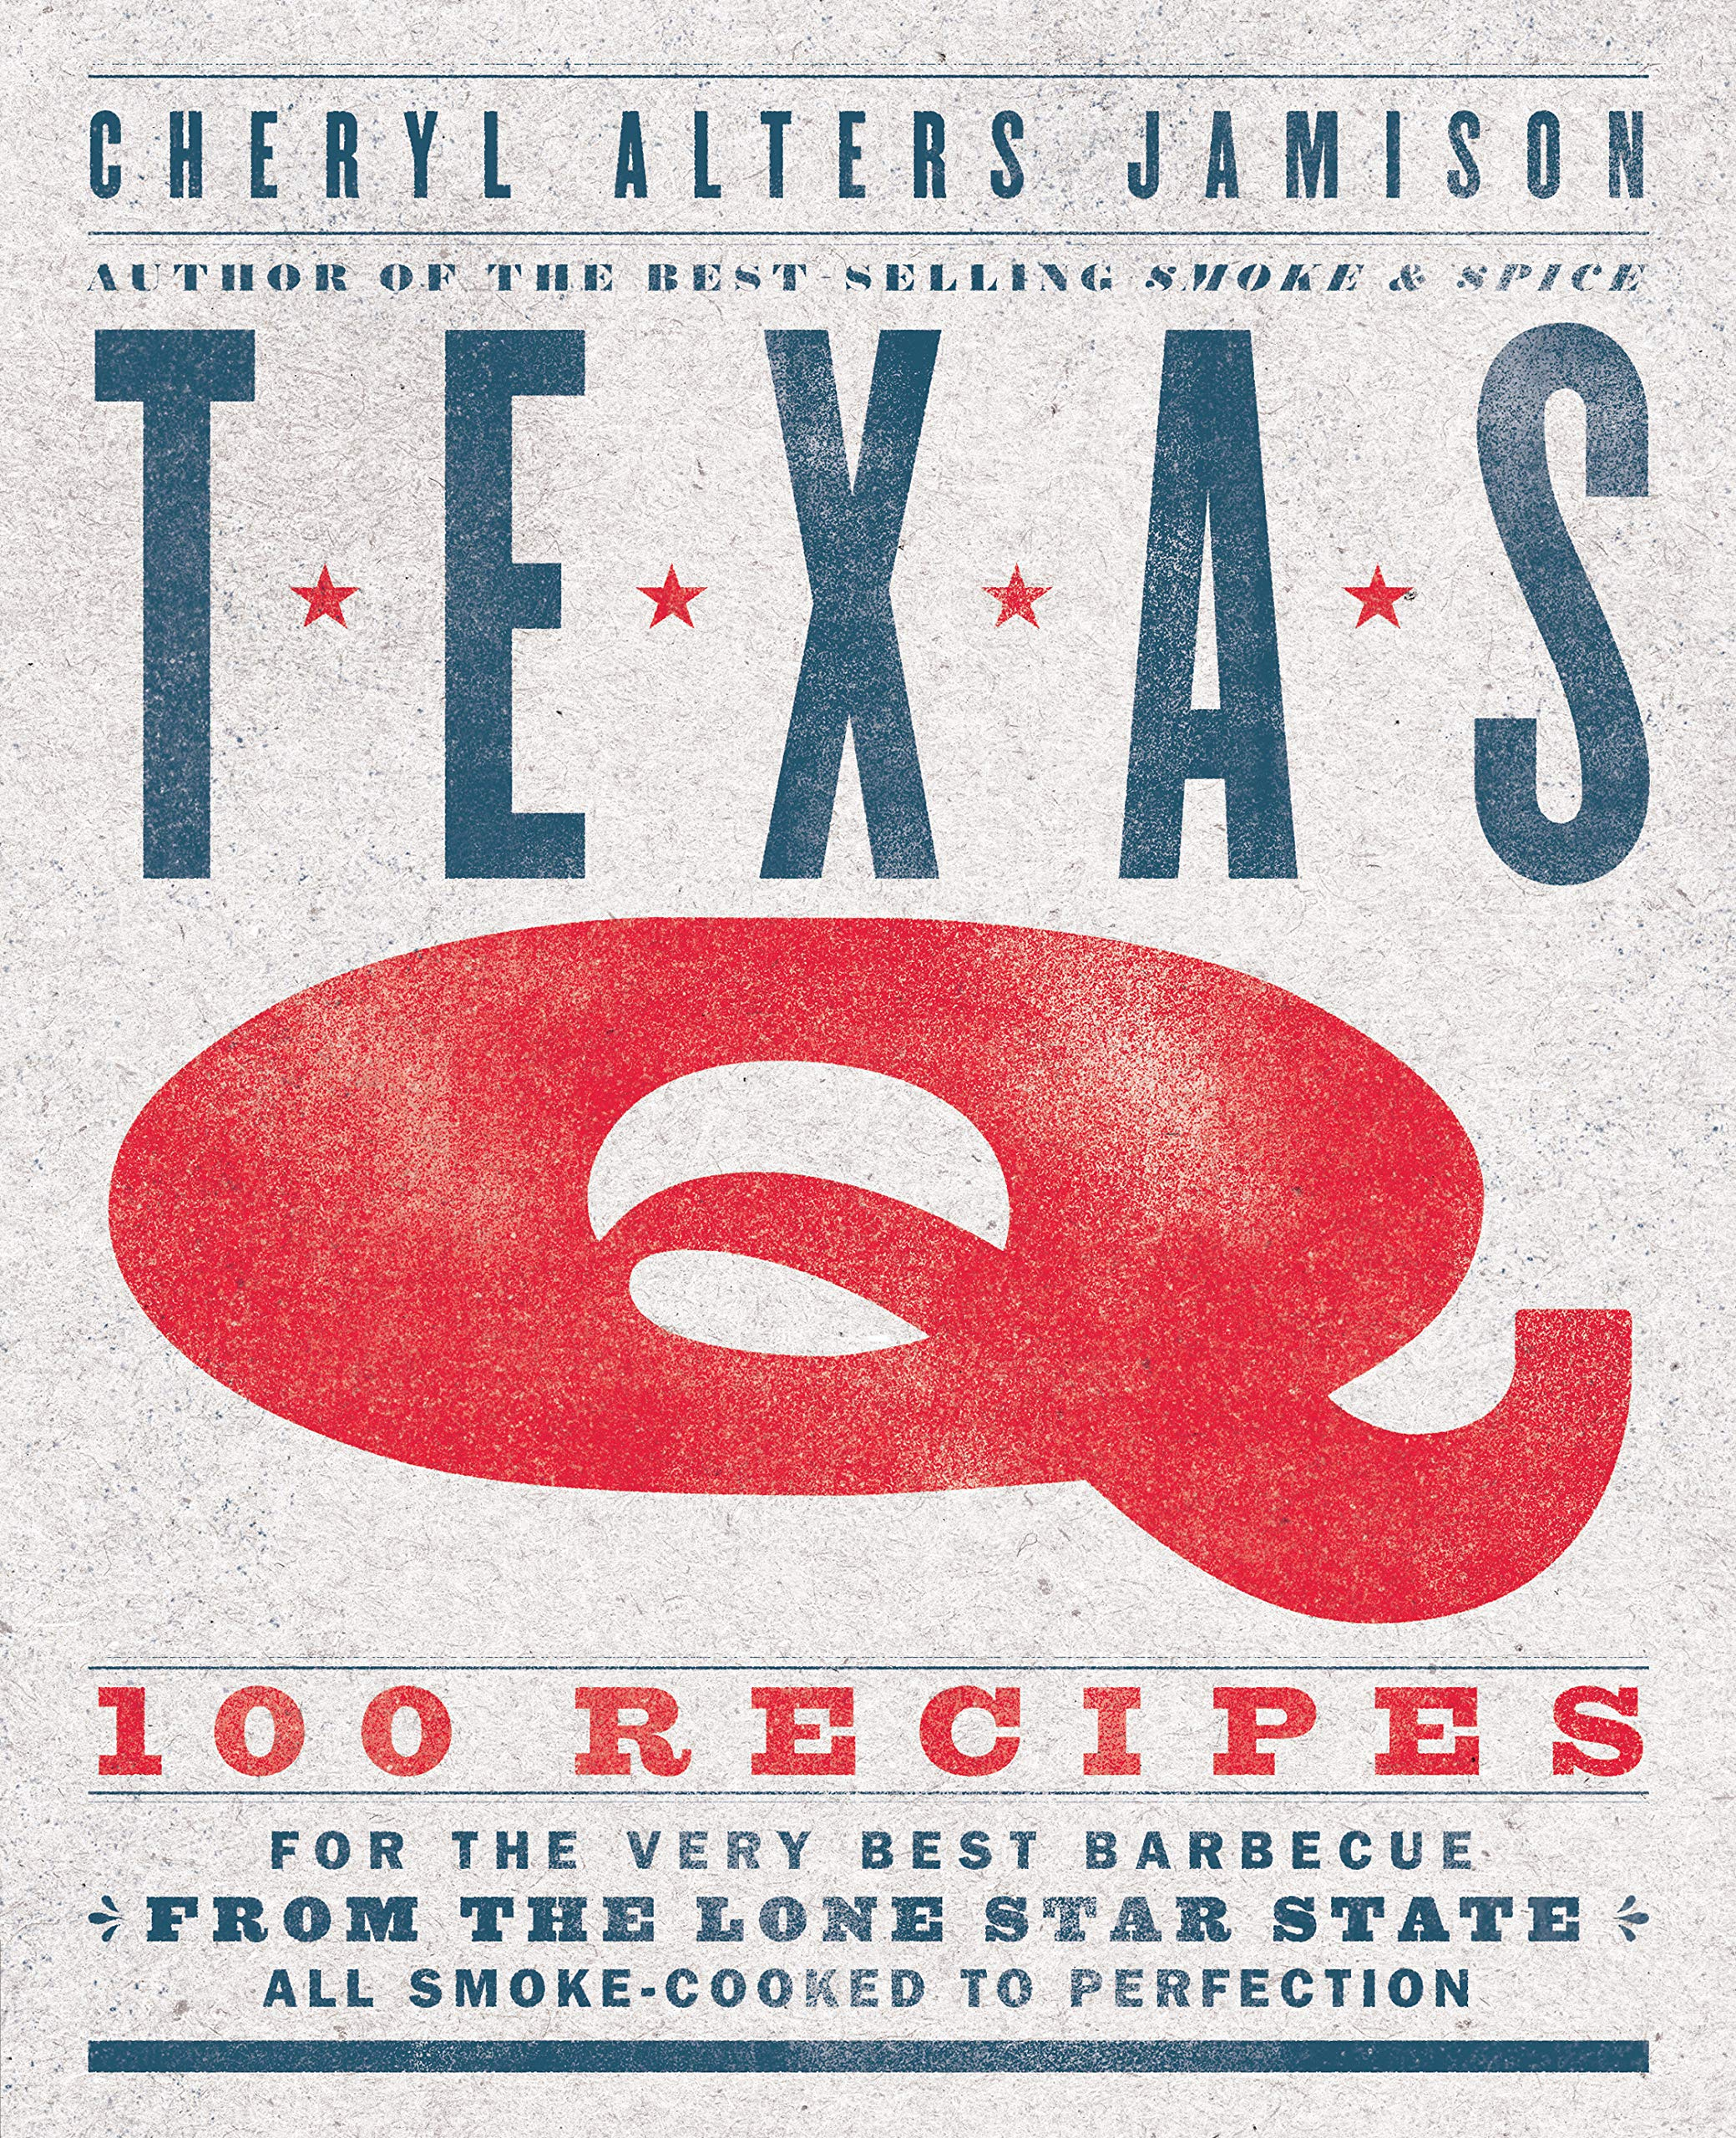 Image OfTexas Q:100 Recipes For The Very Best Barbecue From The Lone Star State, All Smoke-Cooked To Perfection